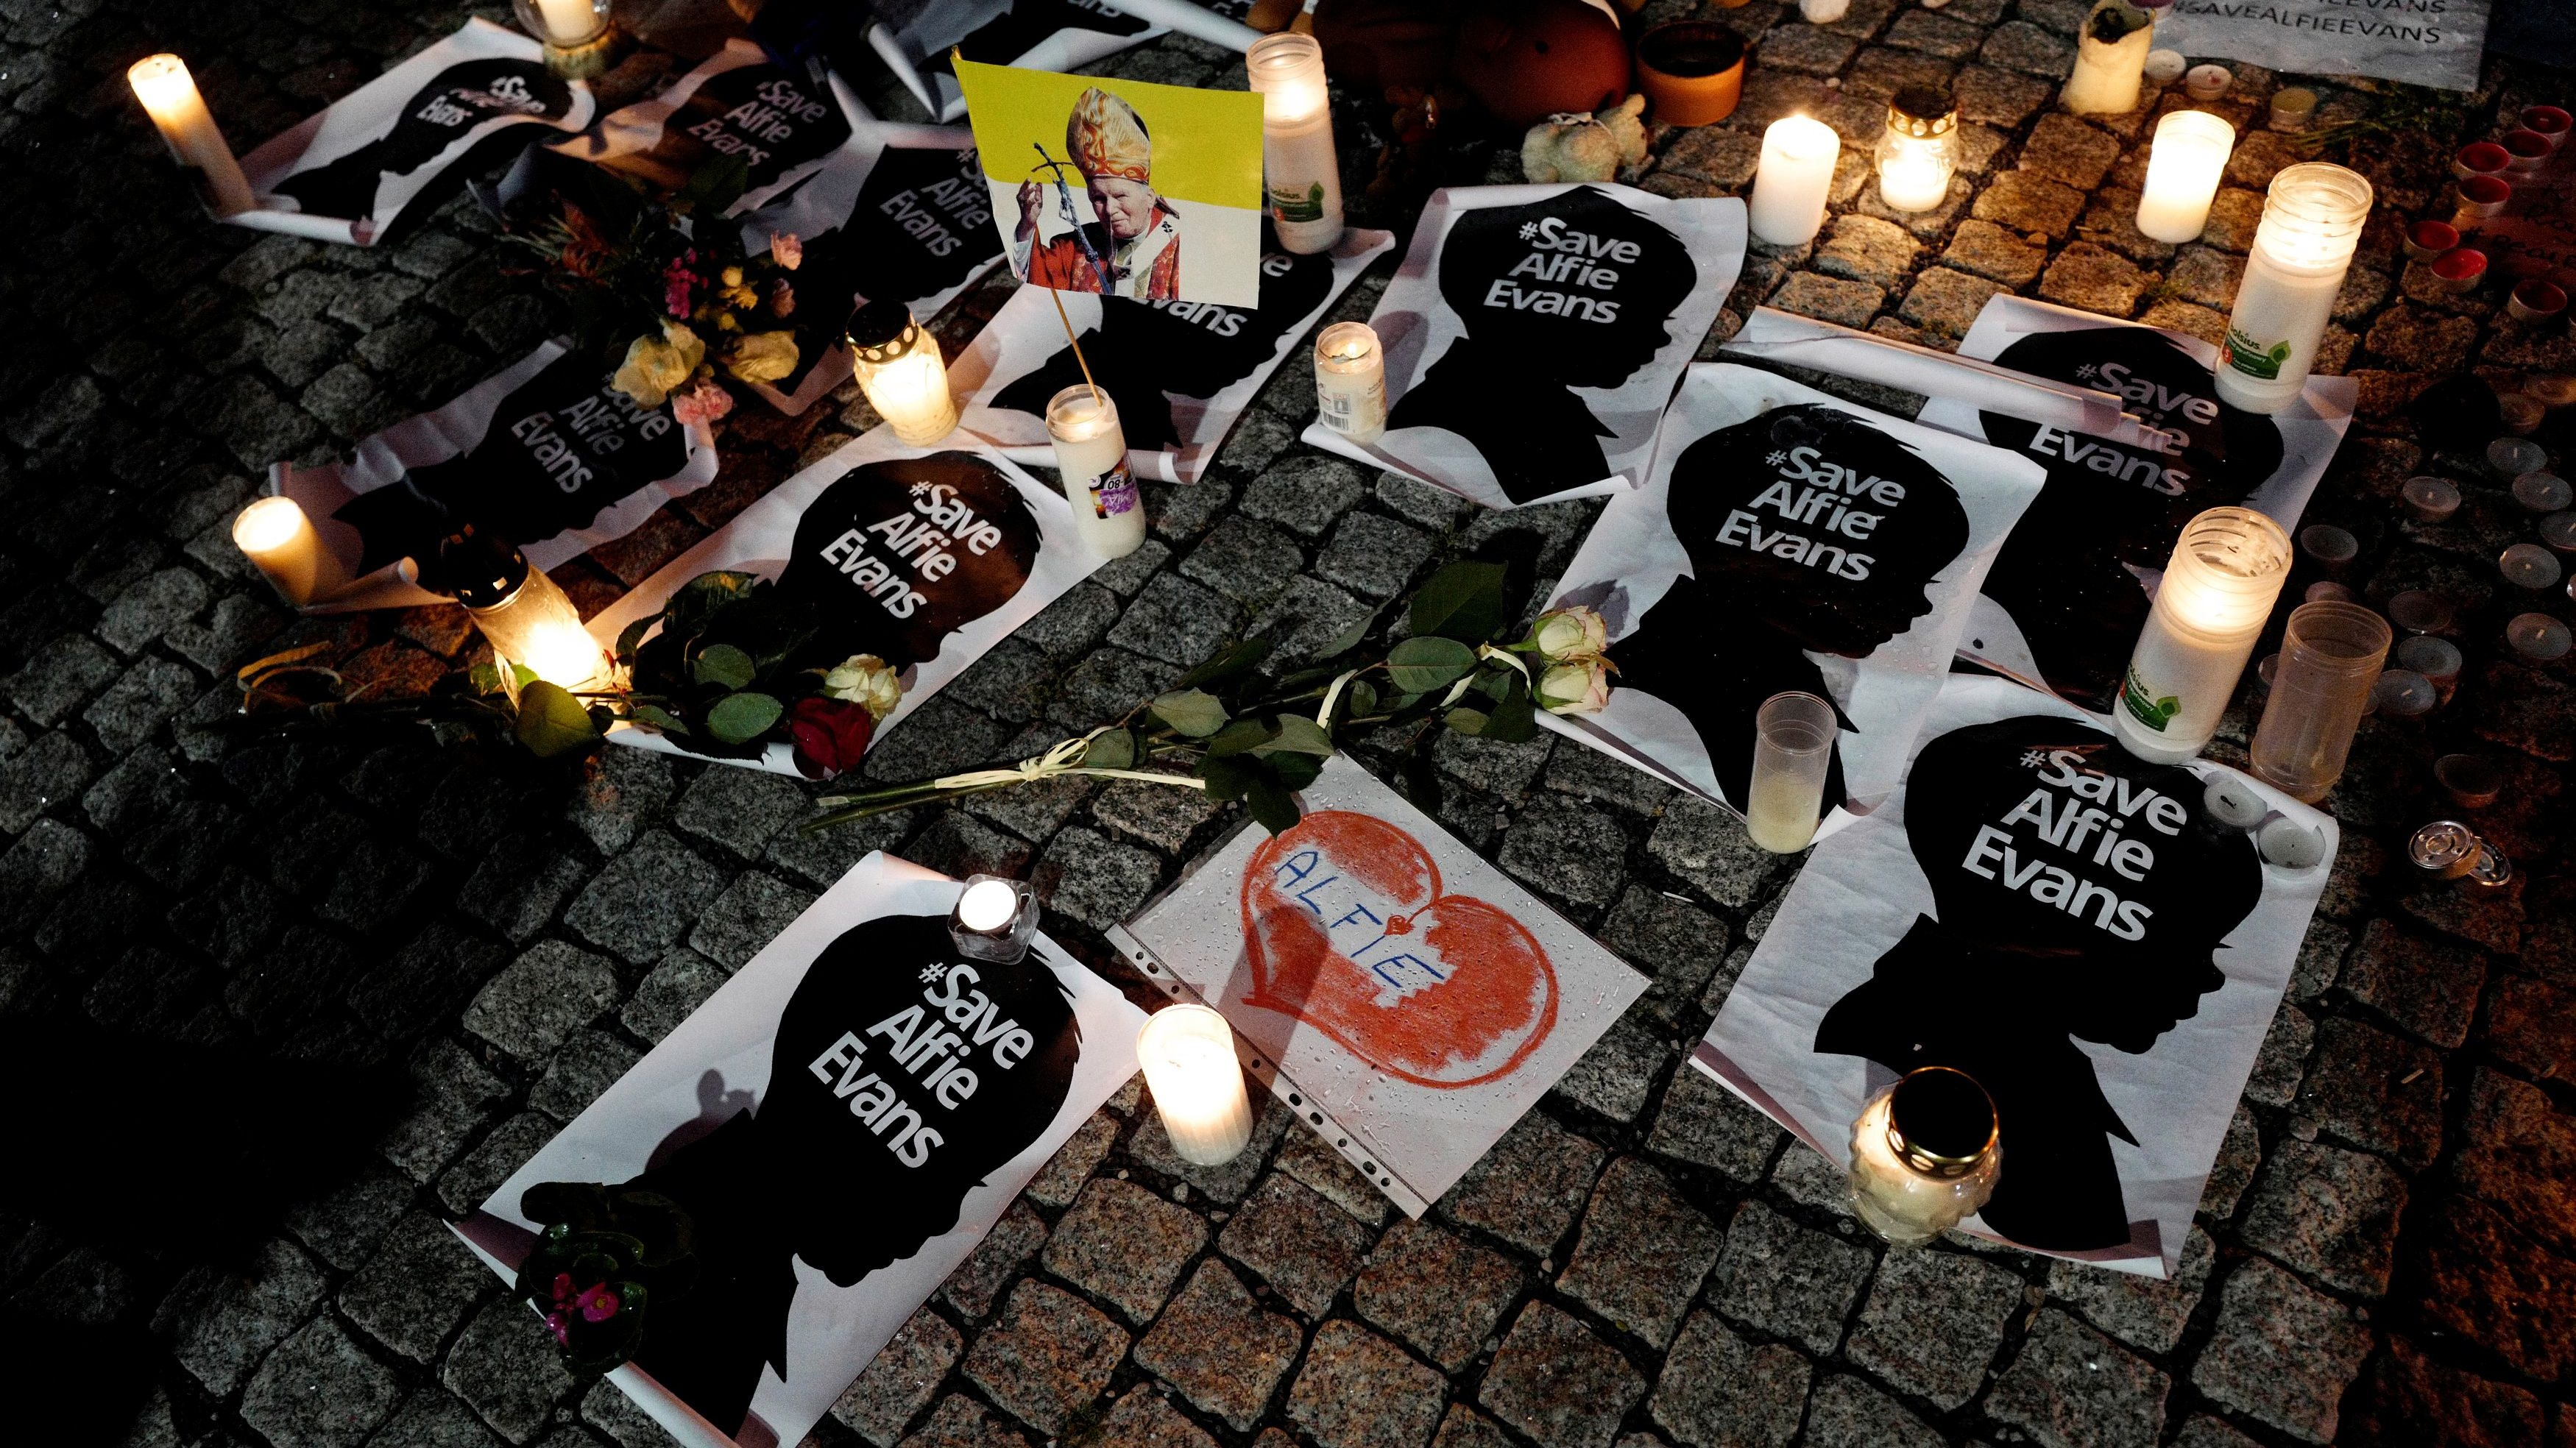 Candles and placards are pictured during a protest in support of Alfie Evans, in front of the British embassy building in Warsaw, Poland, on April 26, 2018.